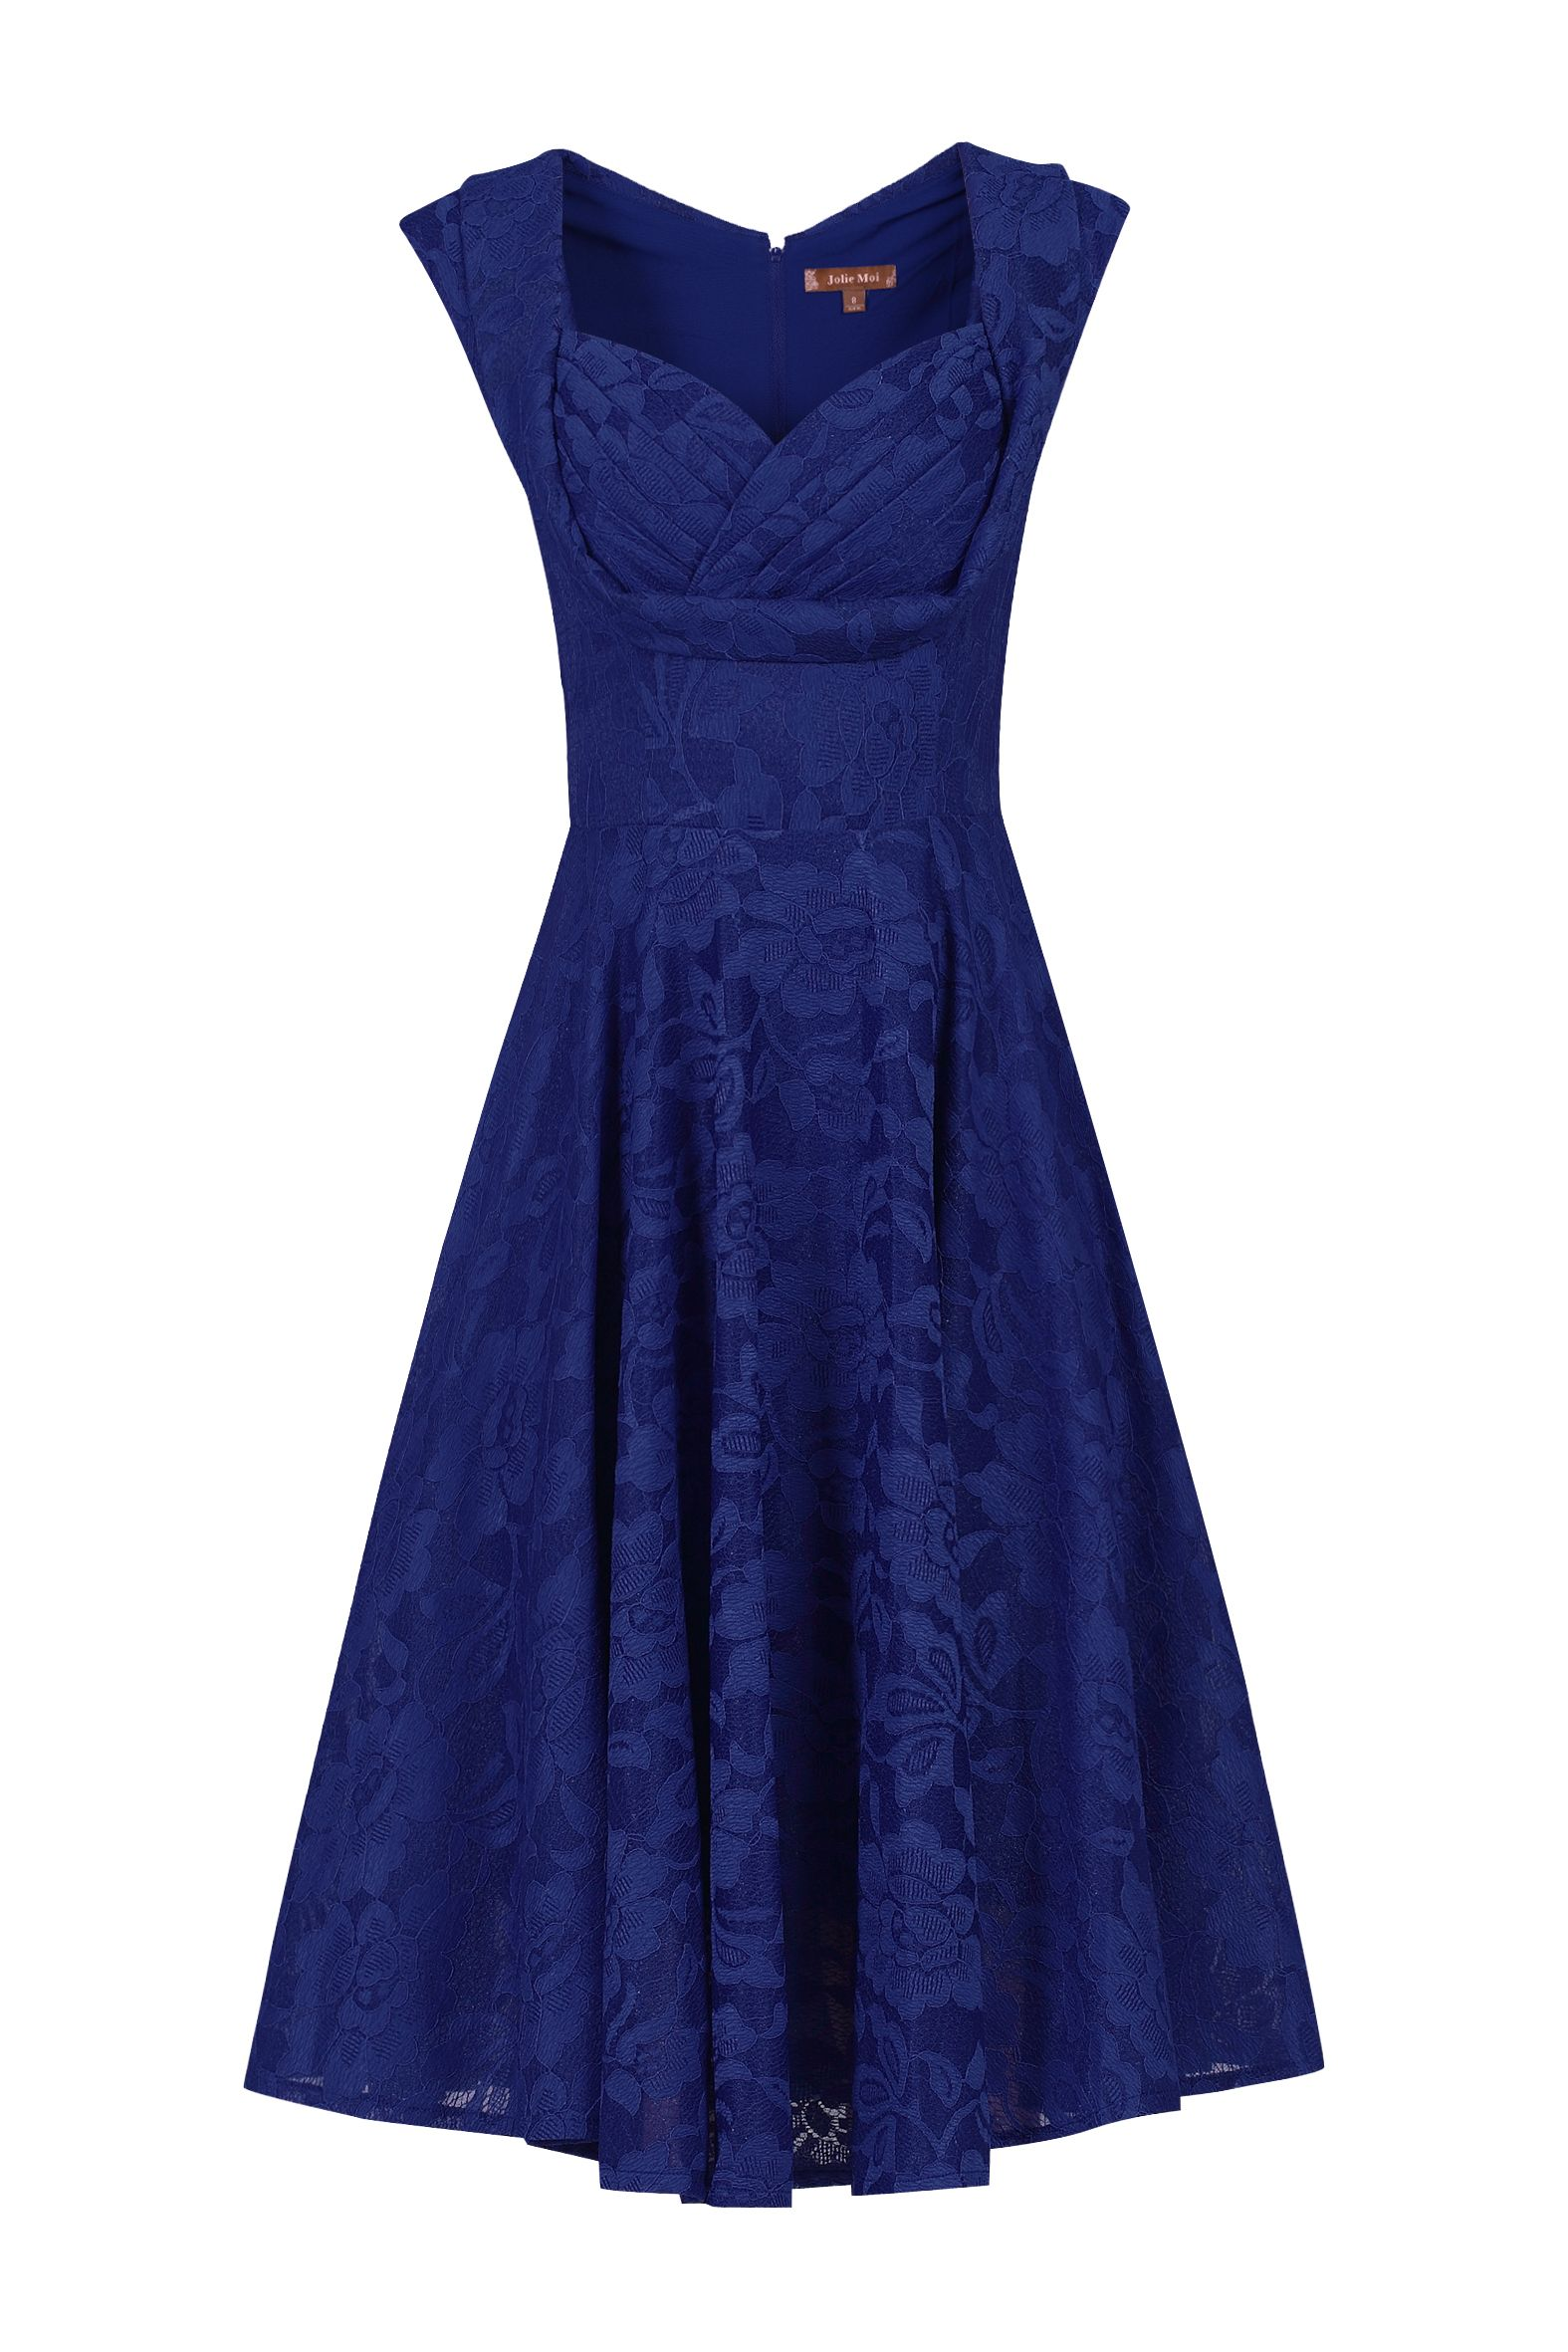 Jolie Moi Ruched Crossover Bust Prom Dress, Royal Blue